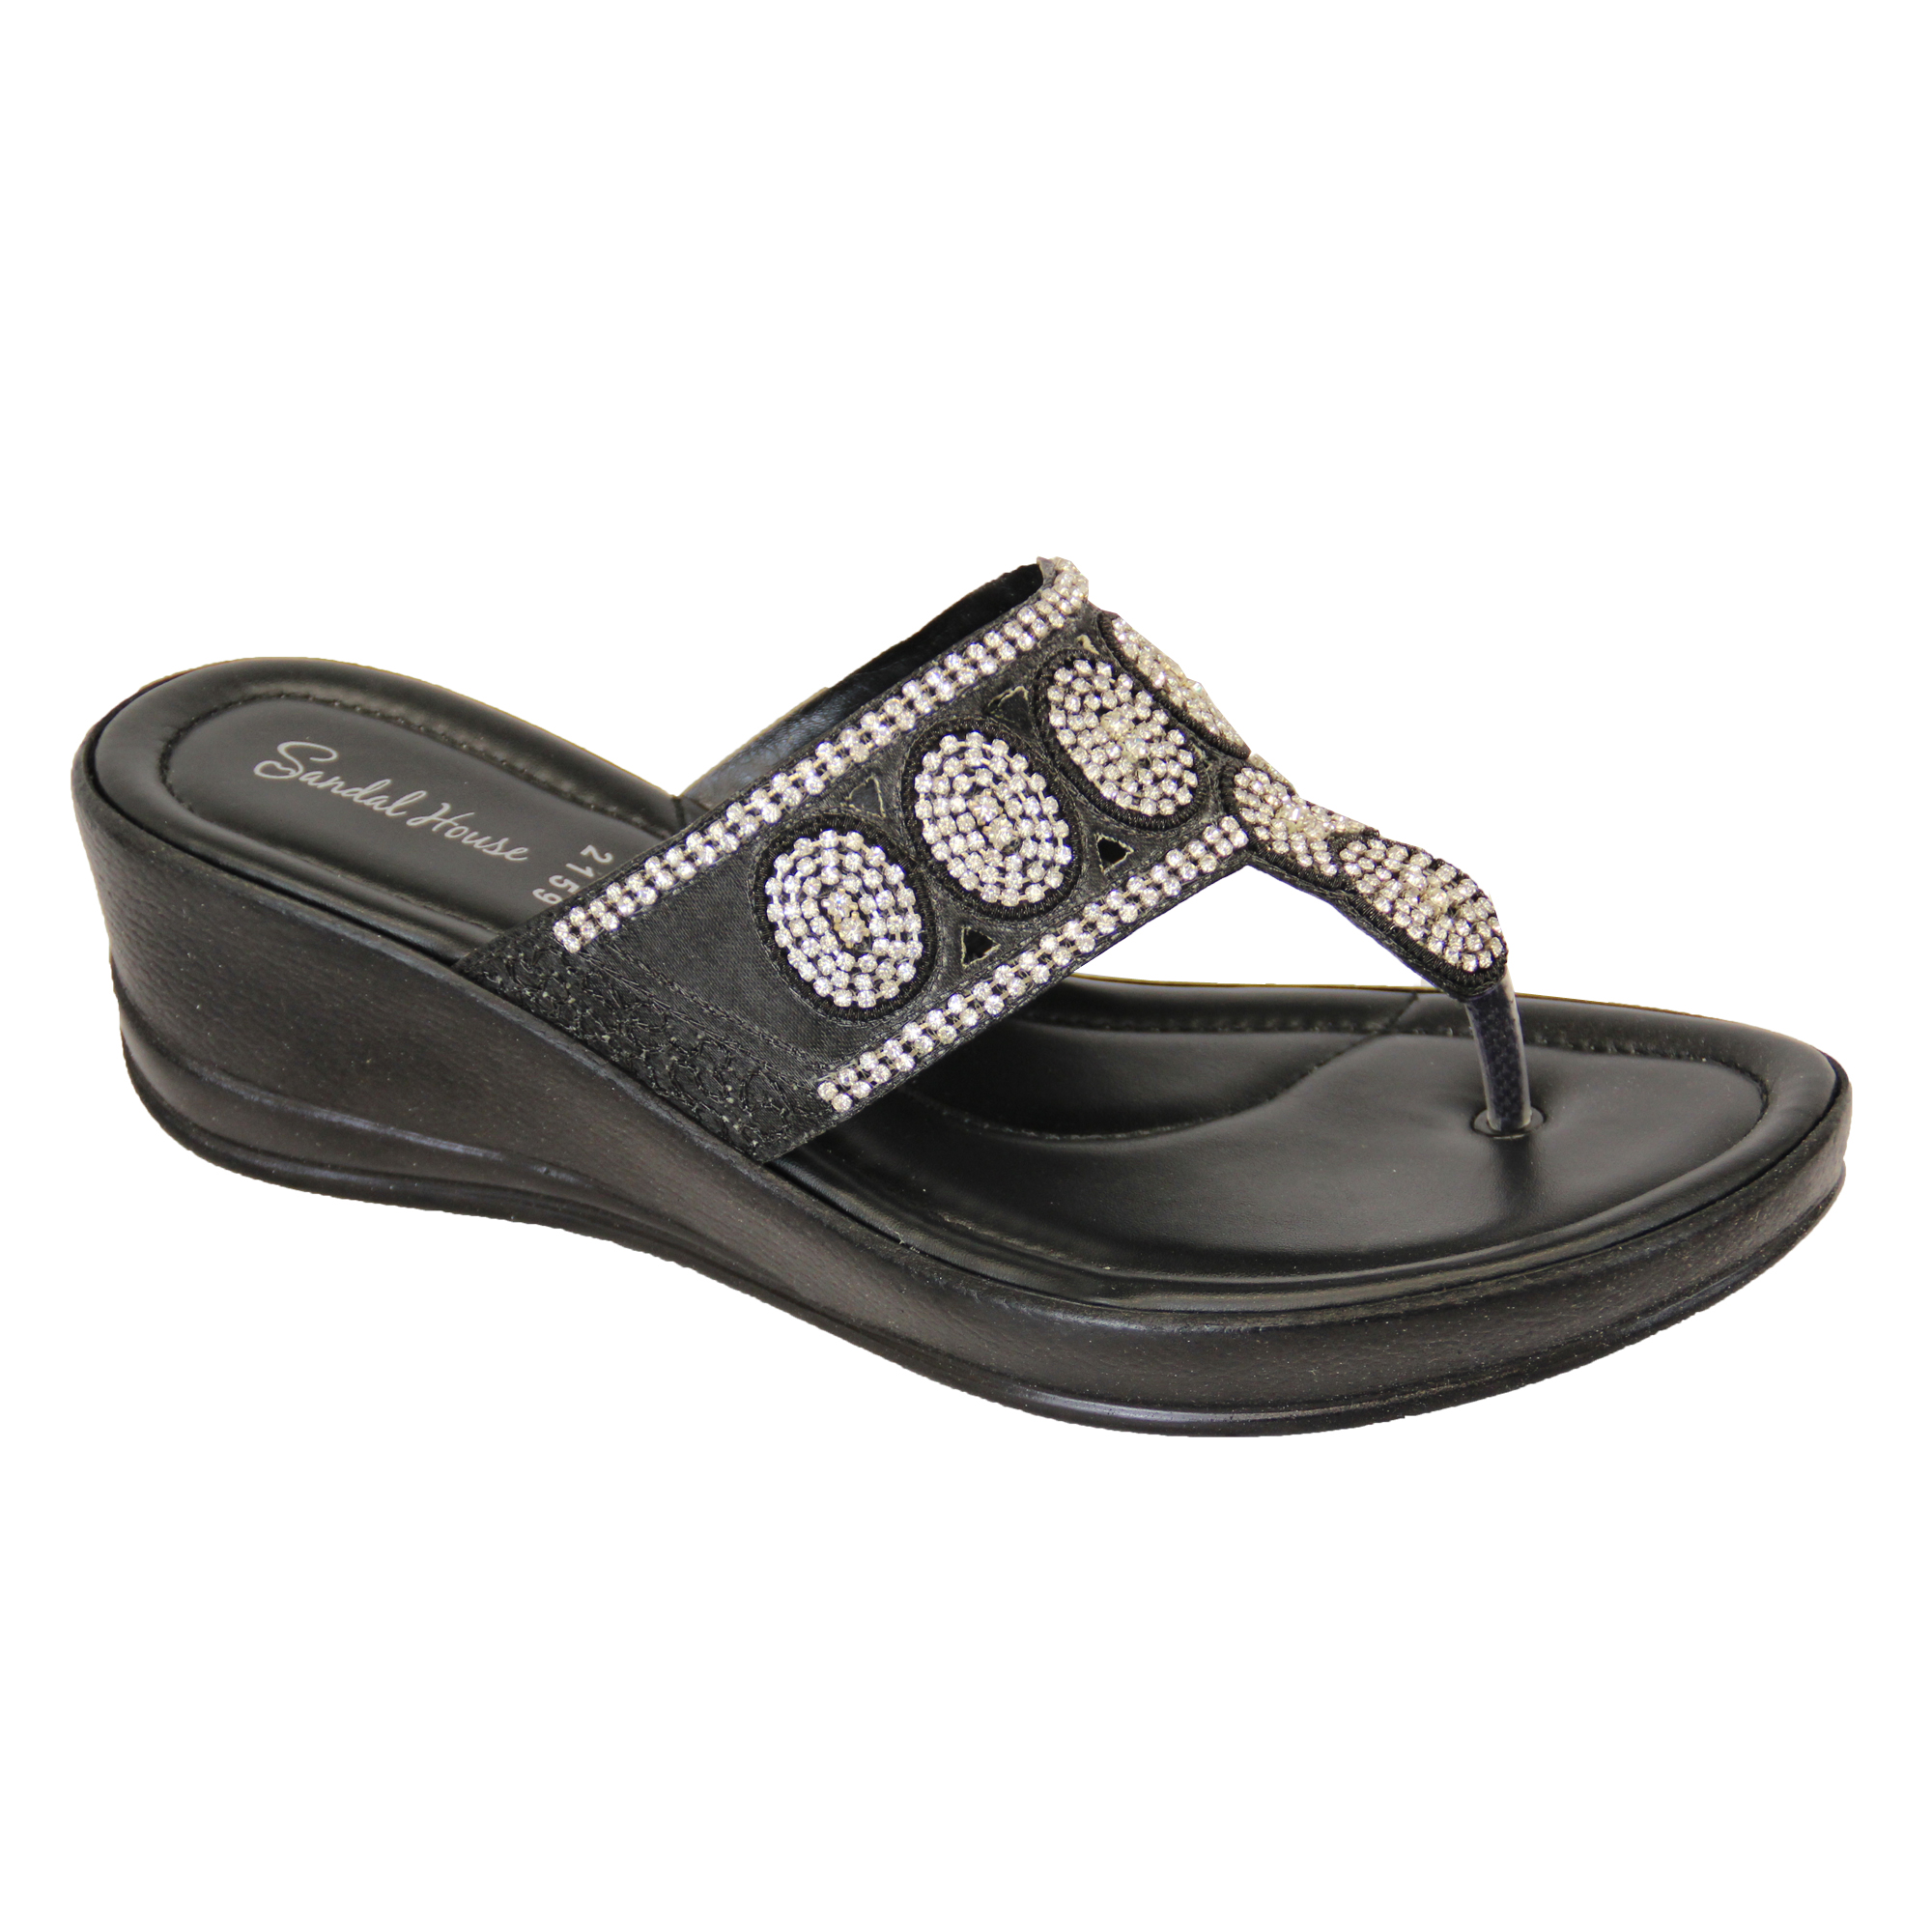 Simple Comfortable Womens Sandals With Excellent Styles U2013 Playzoa.com